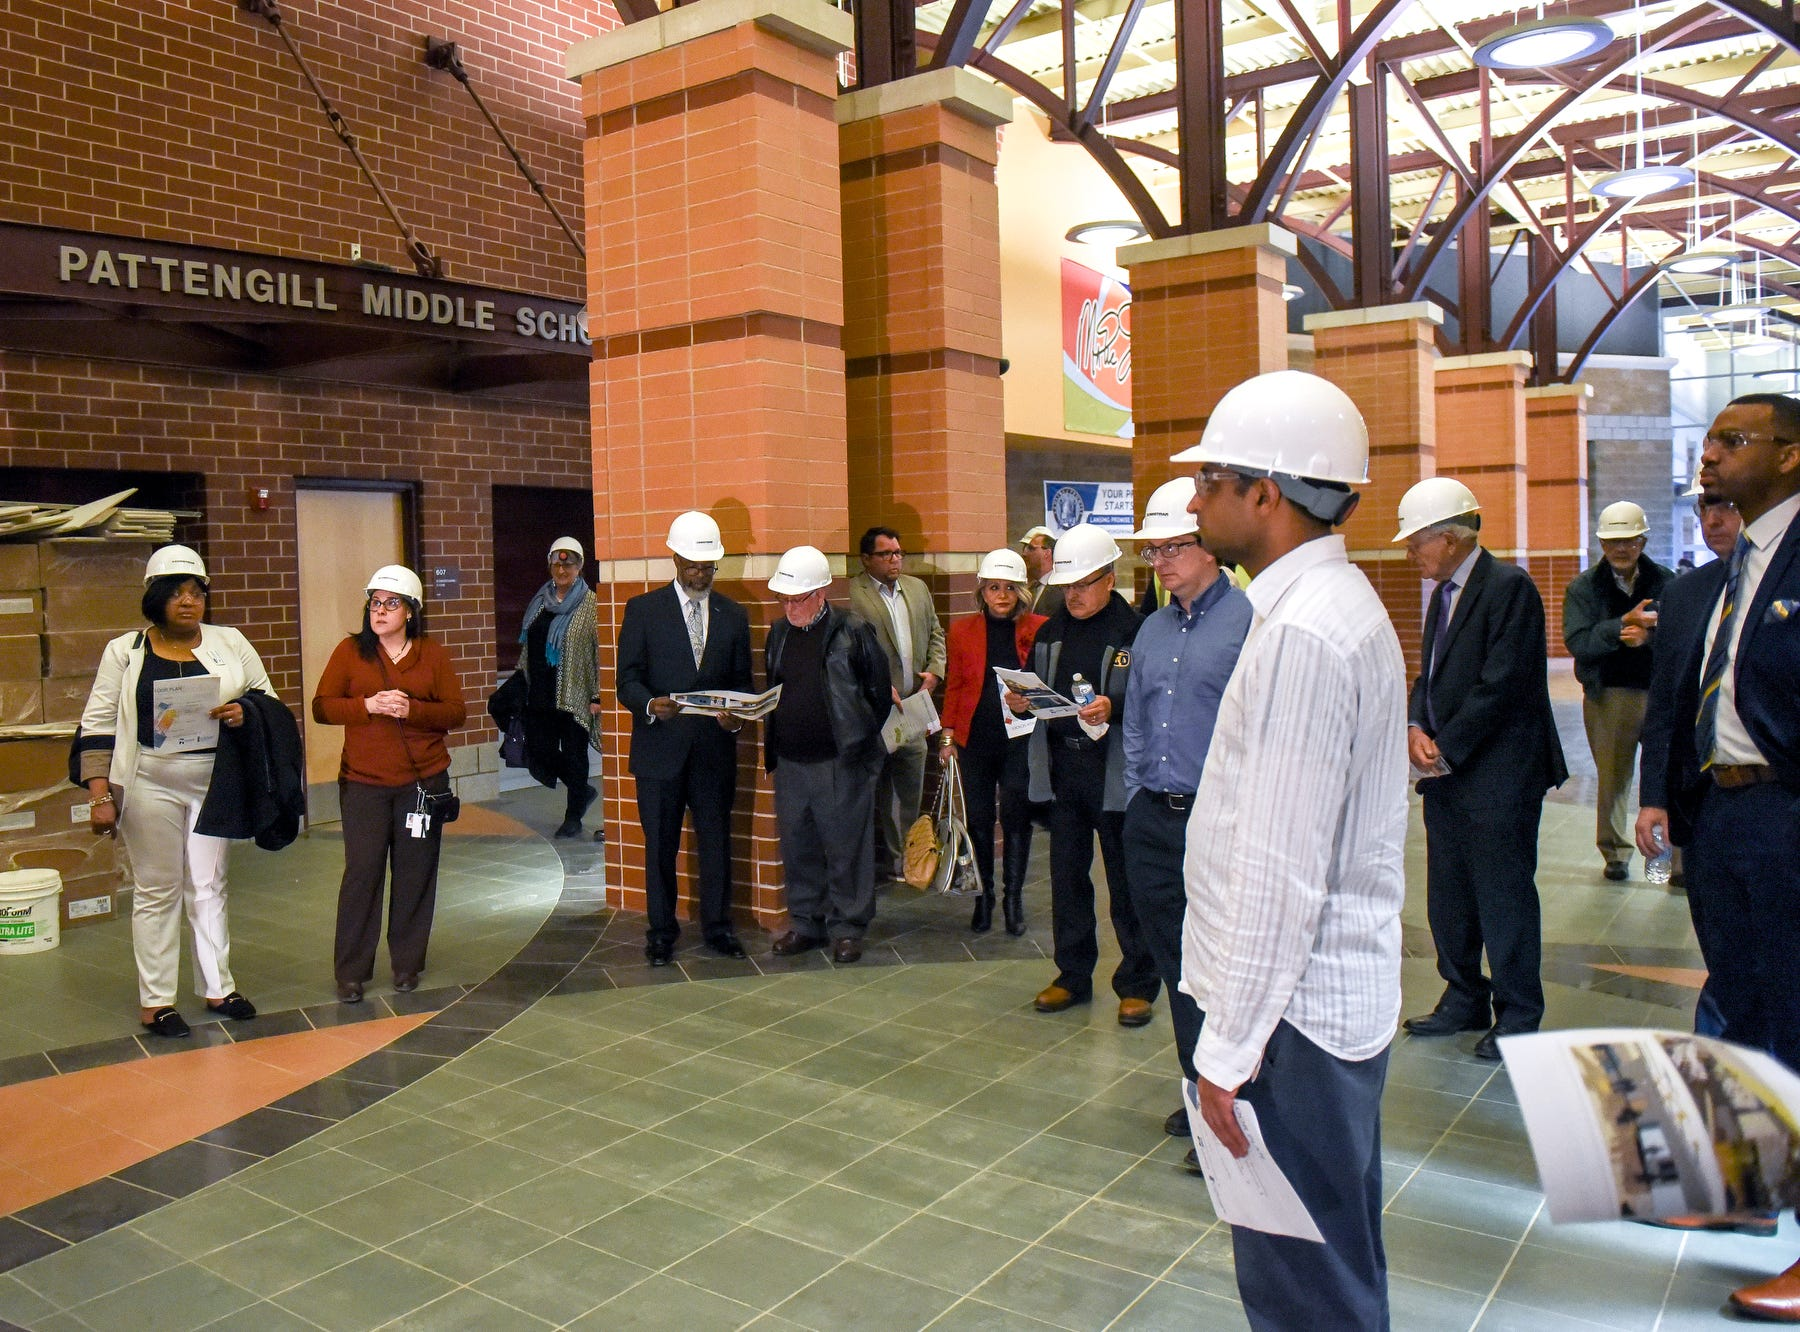 Guests tour of the construction of the new Eastern High School on Thursday, March 14, 2019, in Lansing. The project is being funded by the district's successful Pathway Promise millage, which was passed by voters in 2016. The building was formerly Pattengill Academy.